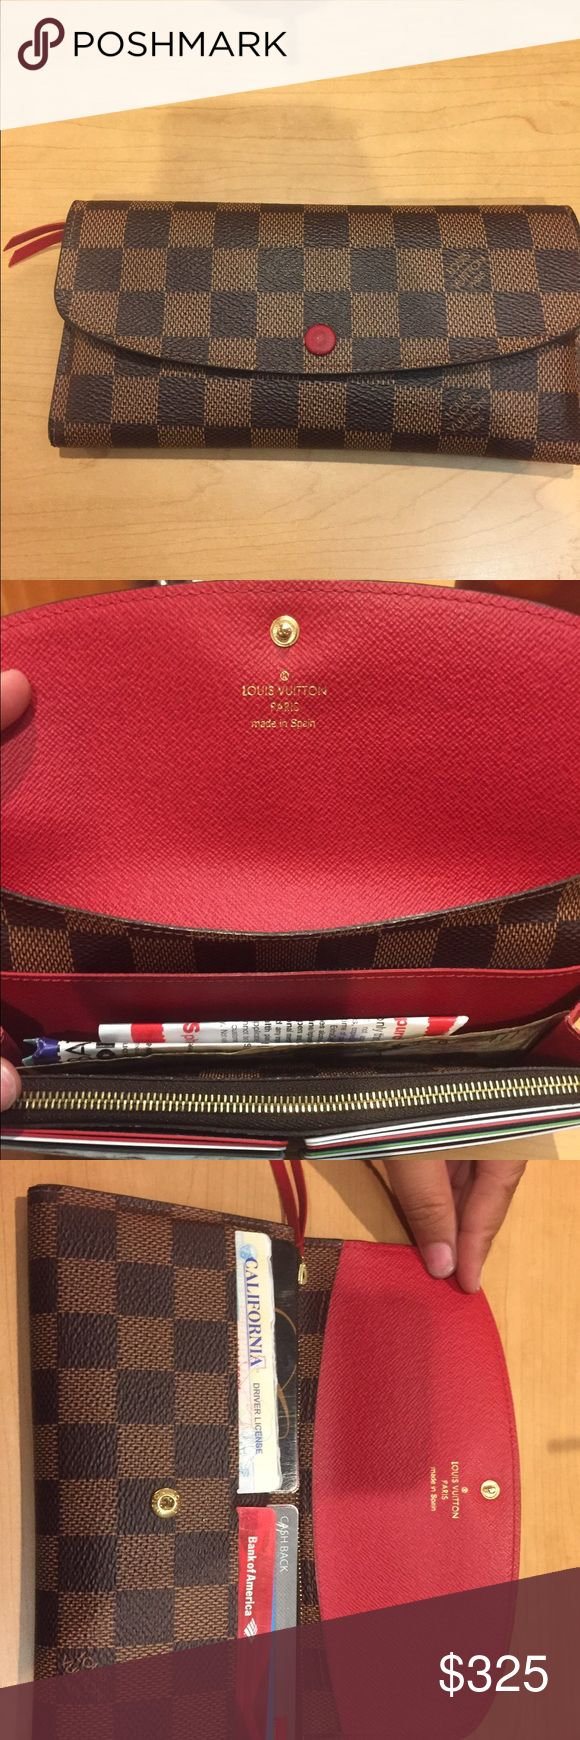 Louis Vuitton Emilie Wallet Damier Ebene Canvas. In great condition. Has 4 card/ID slots. 3 compartments for receipts, cash, etc. has a zip pouch for change and coins. No damage or stains. Comes with dust bag and original box and reciept. Louis Vuitton Bags Wallets